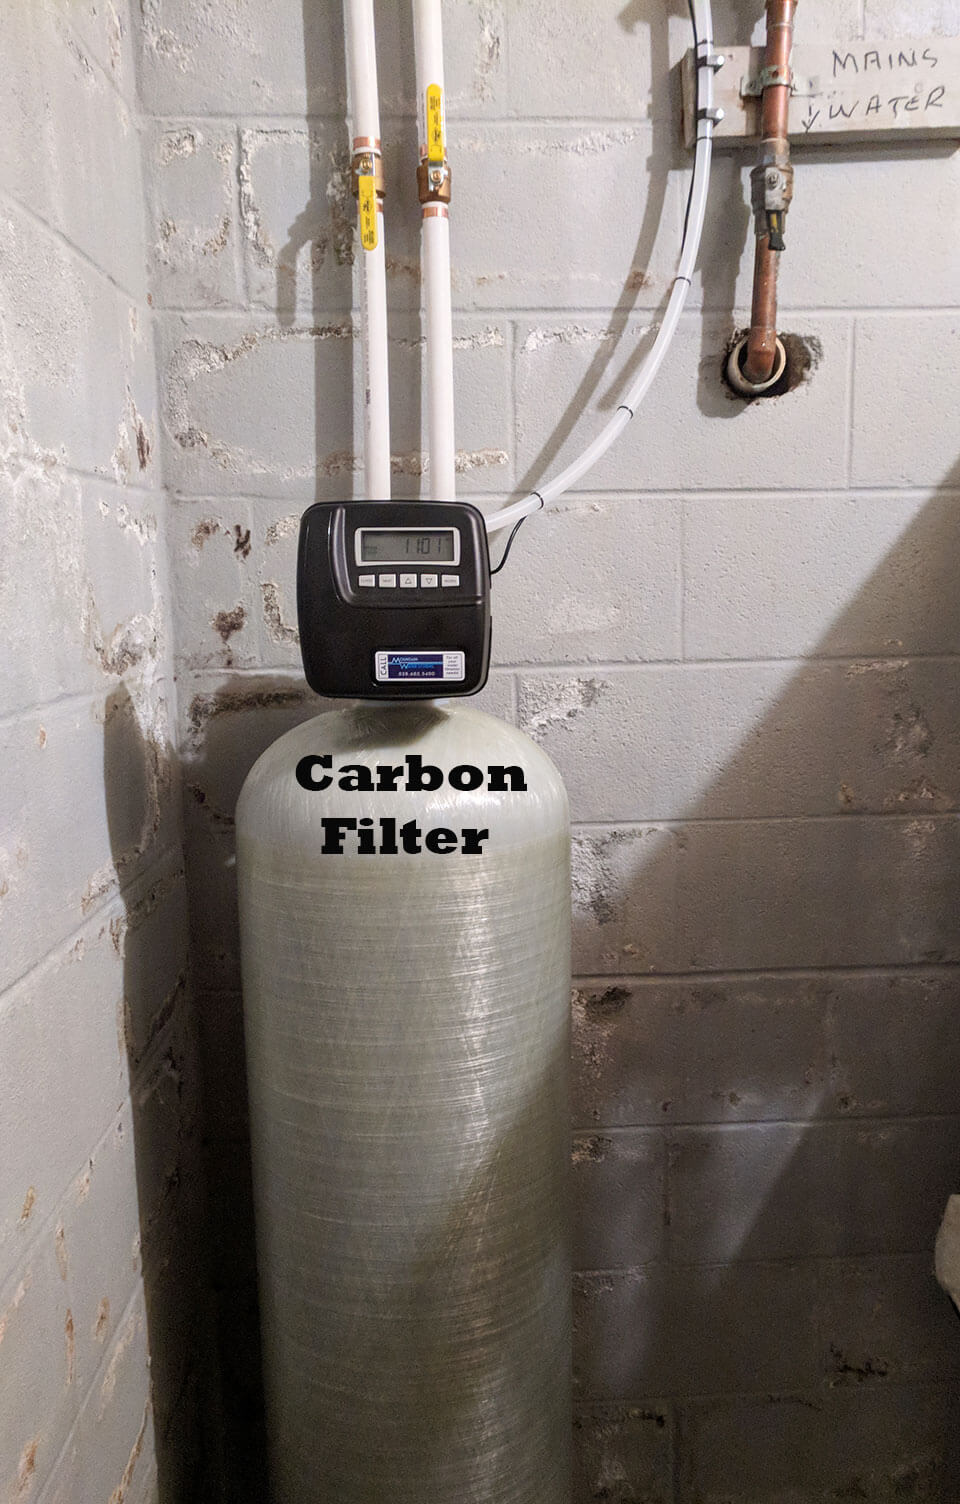 City Water Customer Removes Chlorine With Carbon Filter